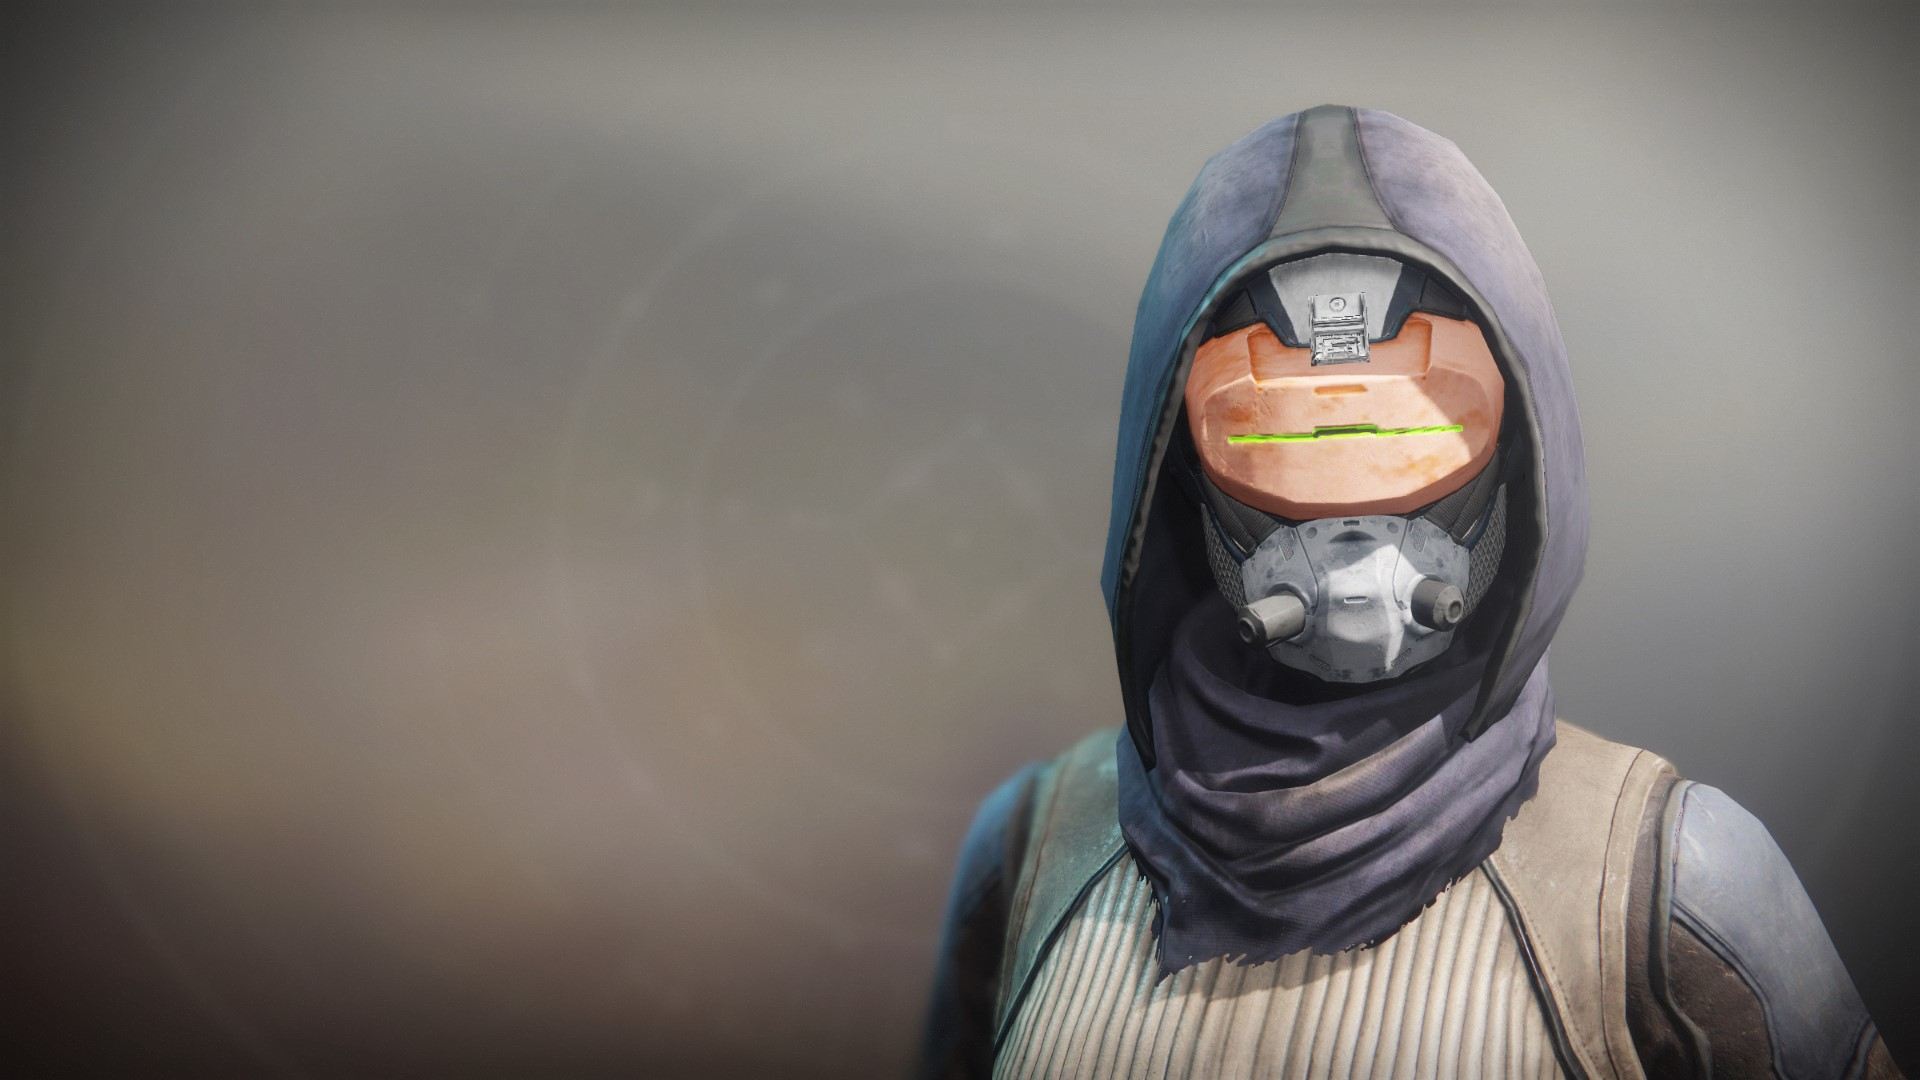 An in-game render of the Steadfast Hunter Ornament.